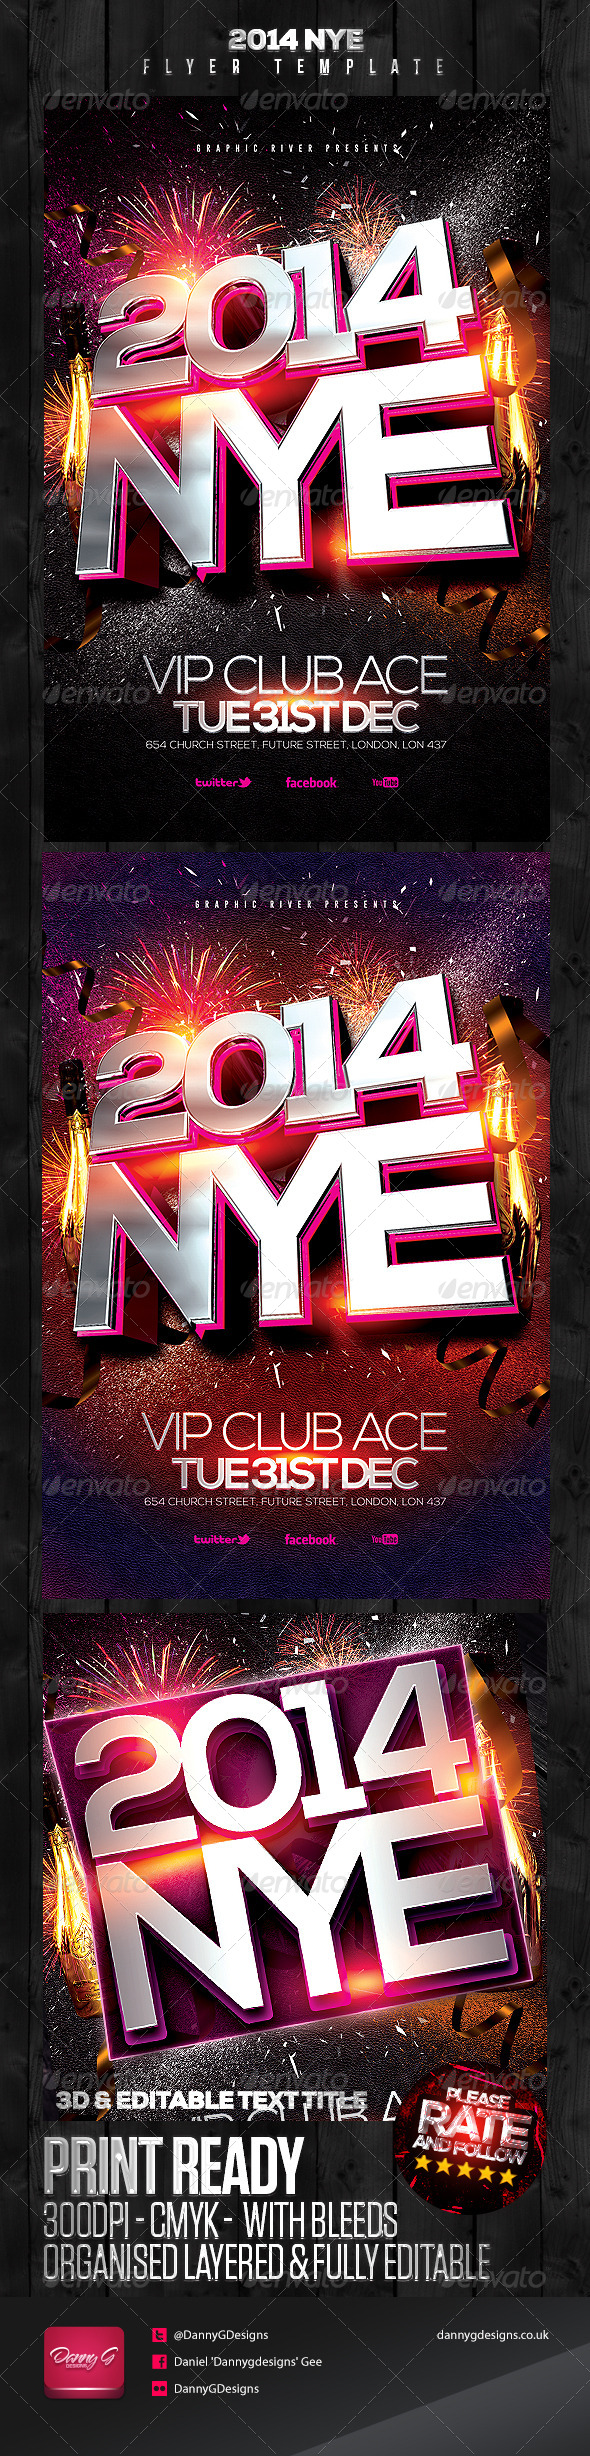 GraphicRiver 2014 NYE Flyer Template 6052478